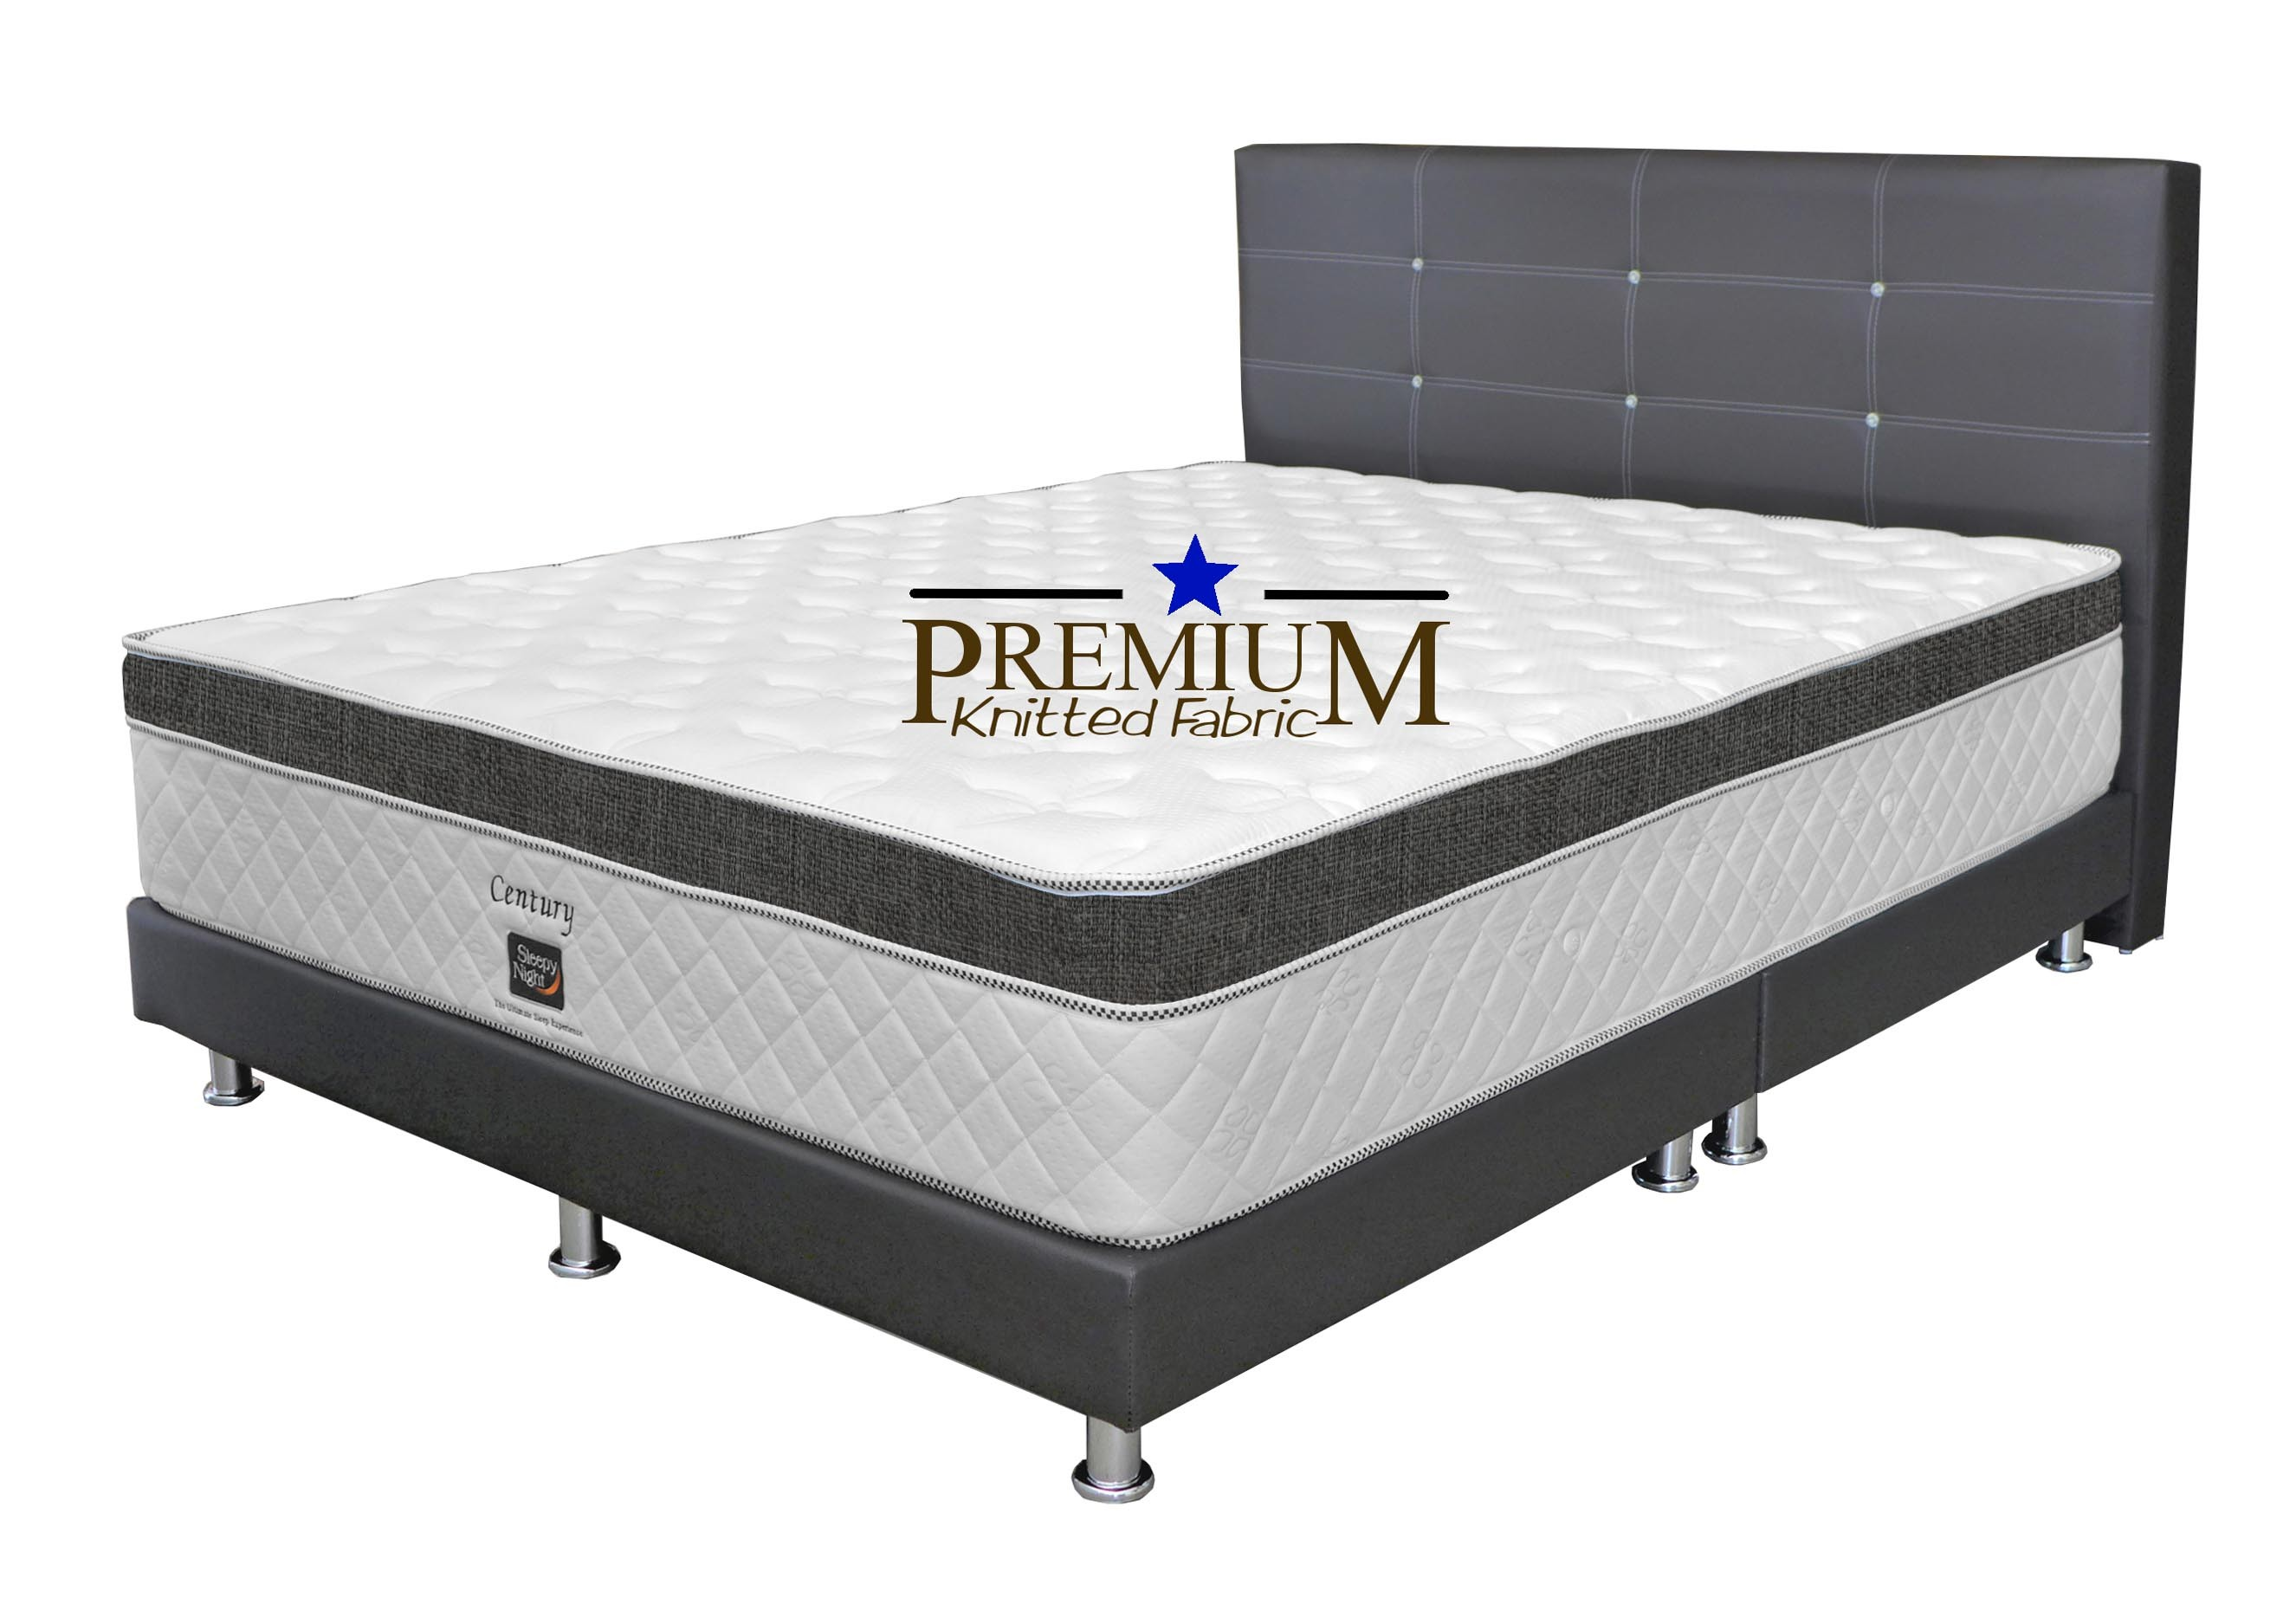 Special Deal Sleepynight Century Orthopedic Spring Mattress Bedframe Package Furniture